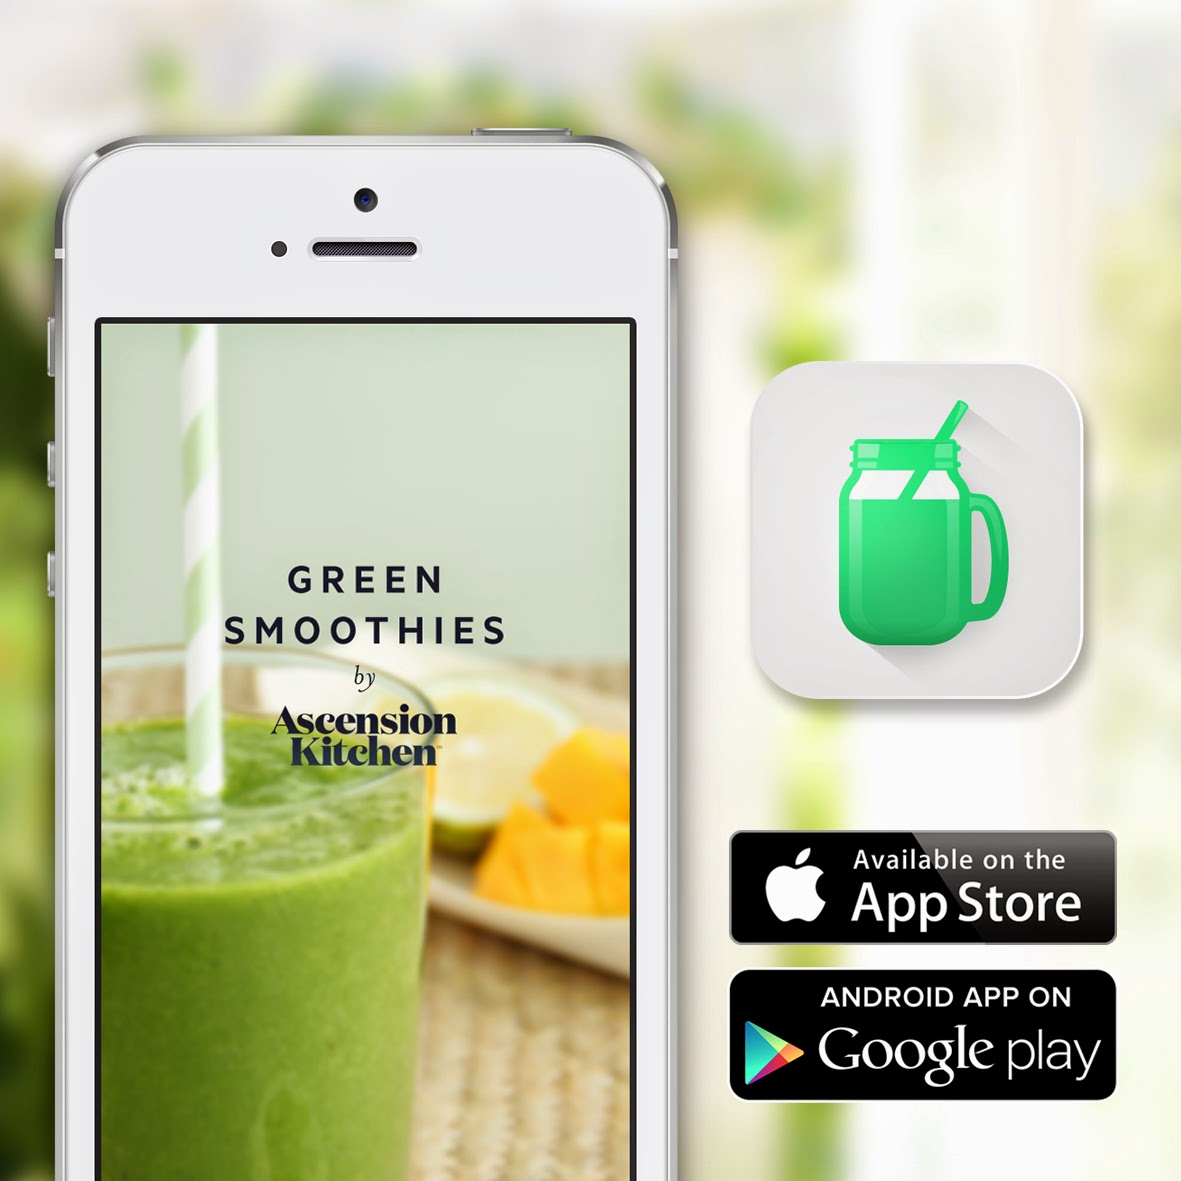 Green Smoothies by Ascension Kitchen APP